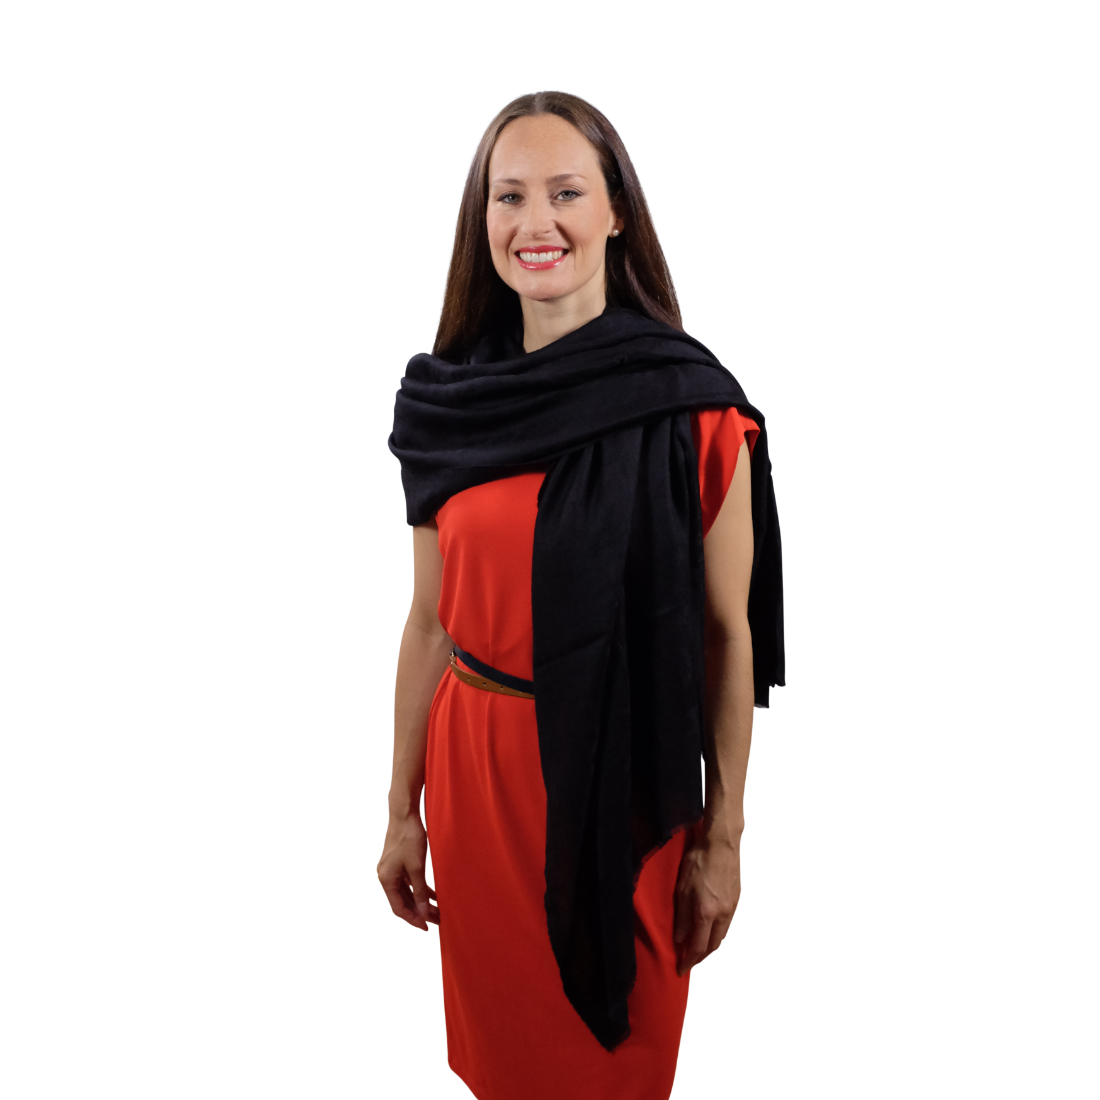 Obsidian black cashmere scarf for her